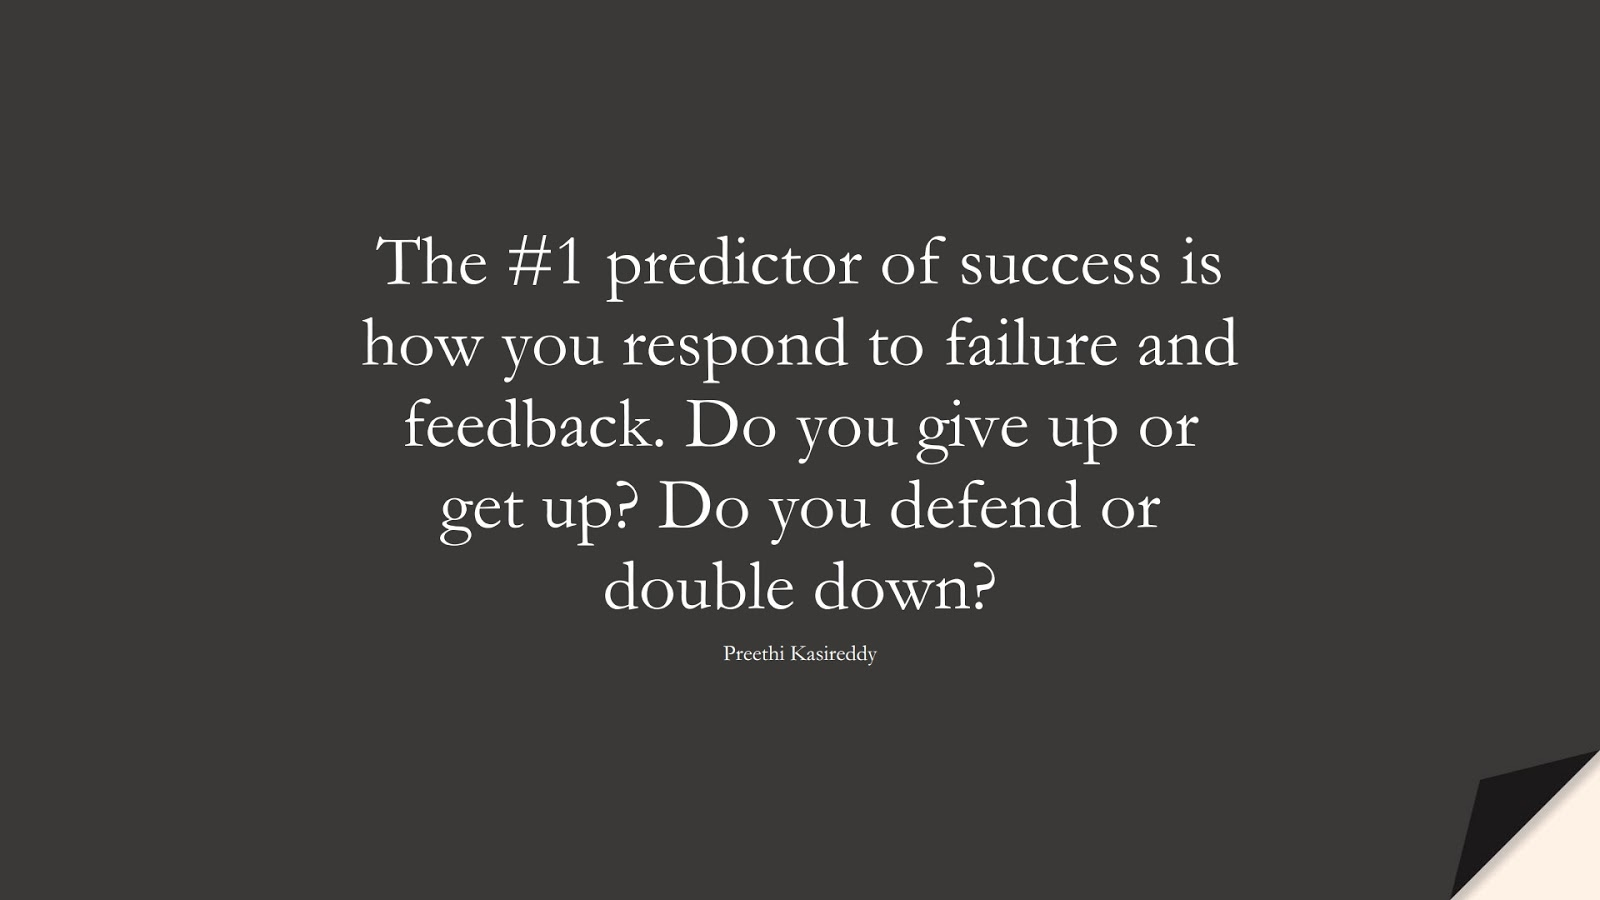 The #1 predictor of success is how you respond to failure and feedback. Do you give up or get up? Do you defend or double down? (Preethi Kasireddy);  #NeverGiveUpQuotes